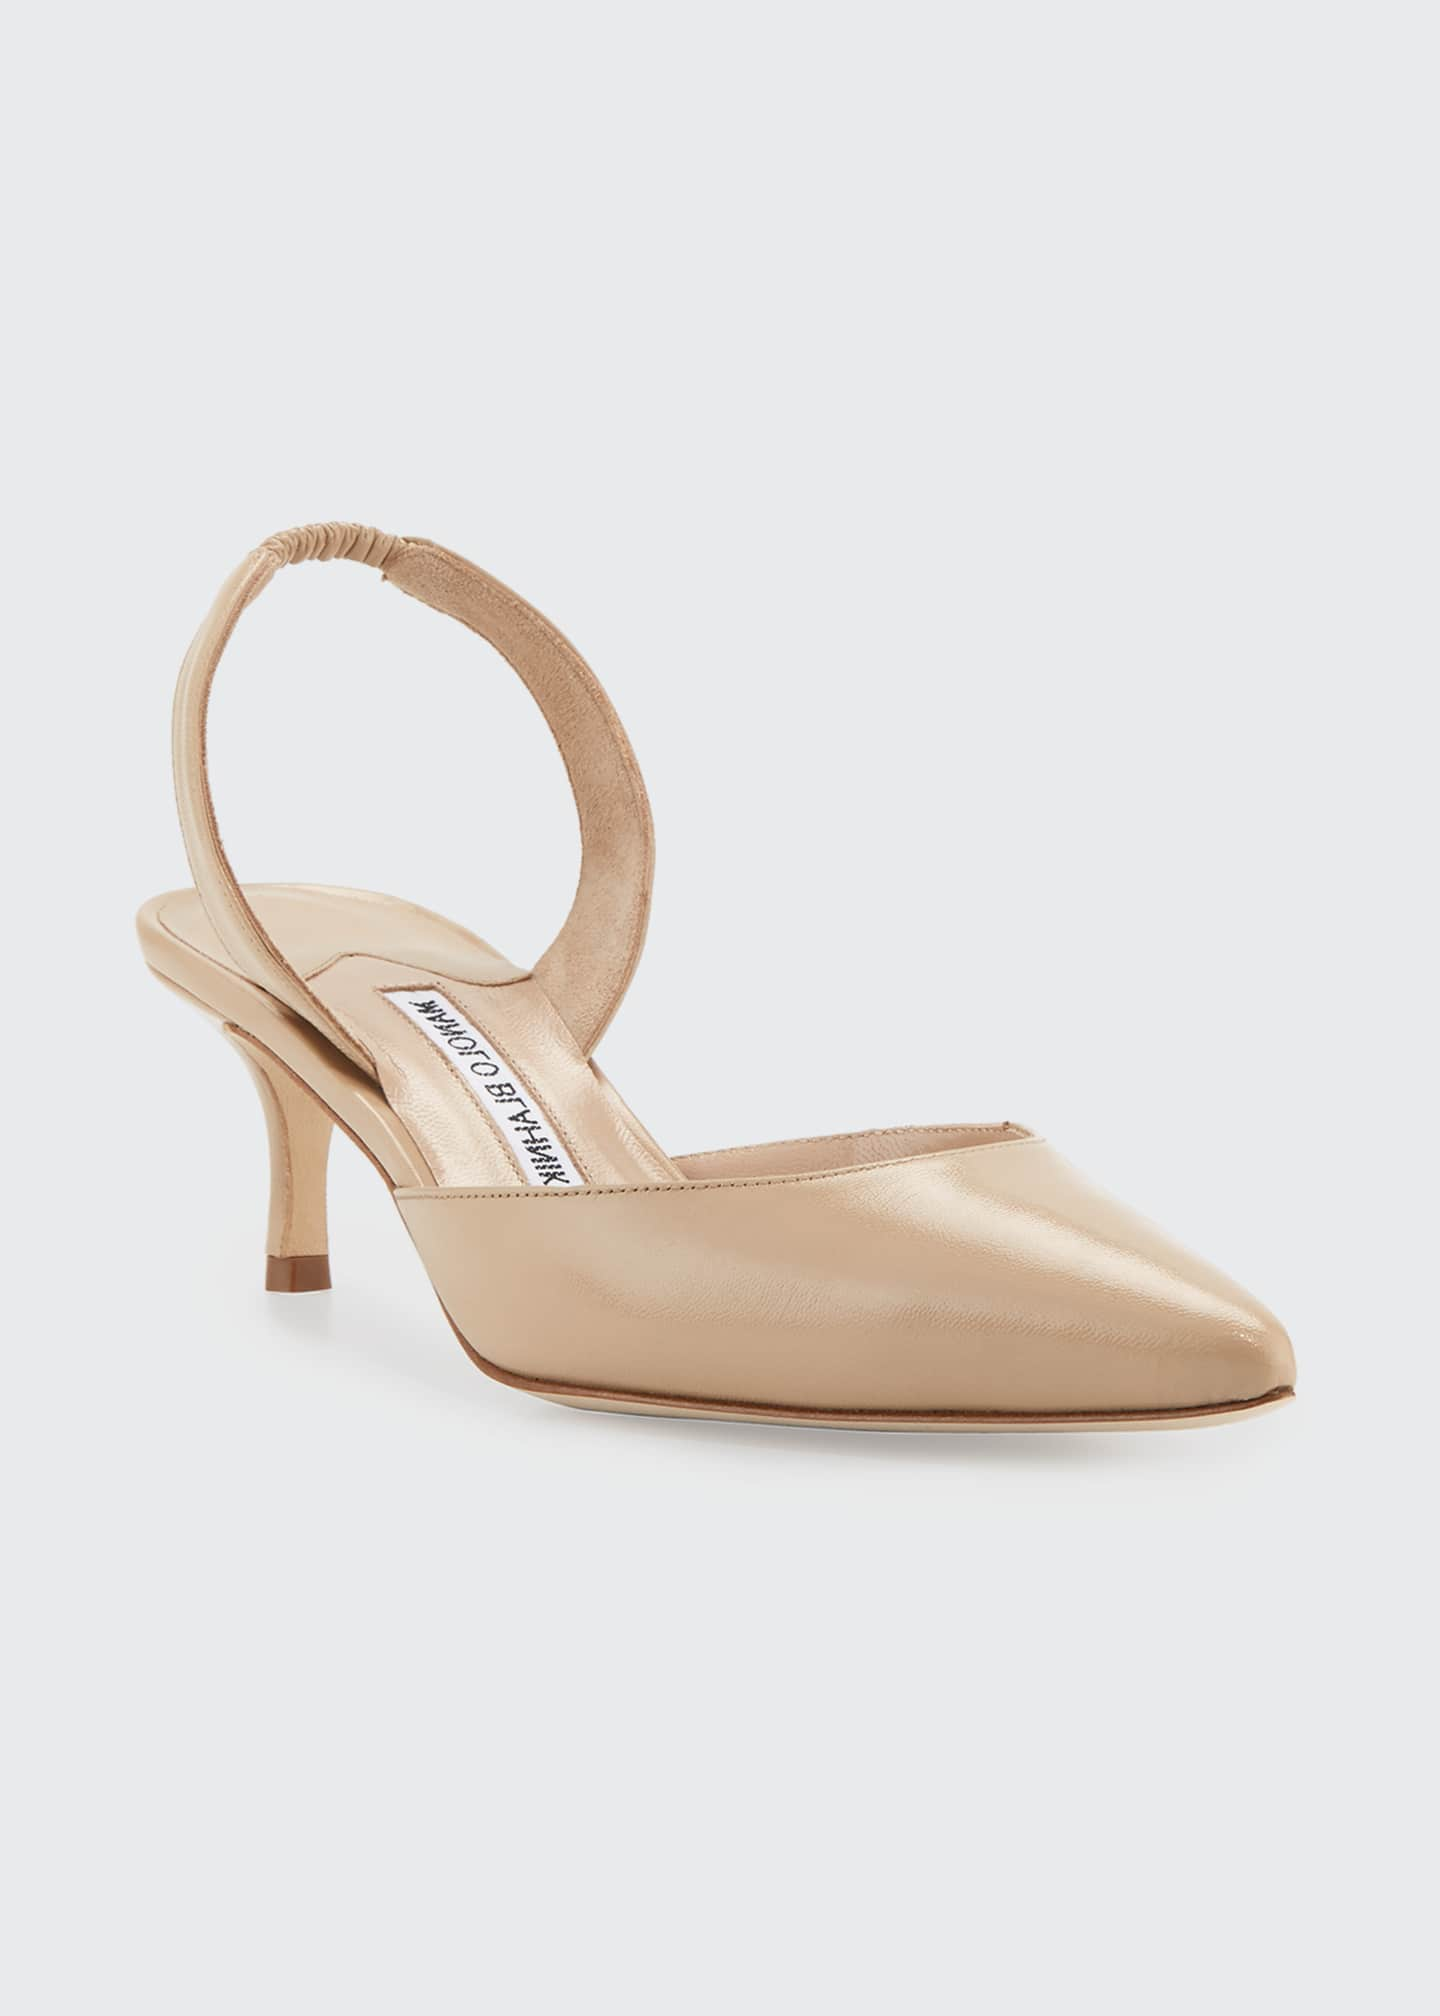 Manolo Blahnik Carolyne Leather Low-Heel Slingback Pump